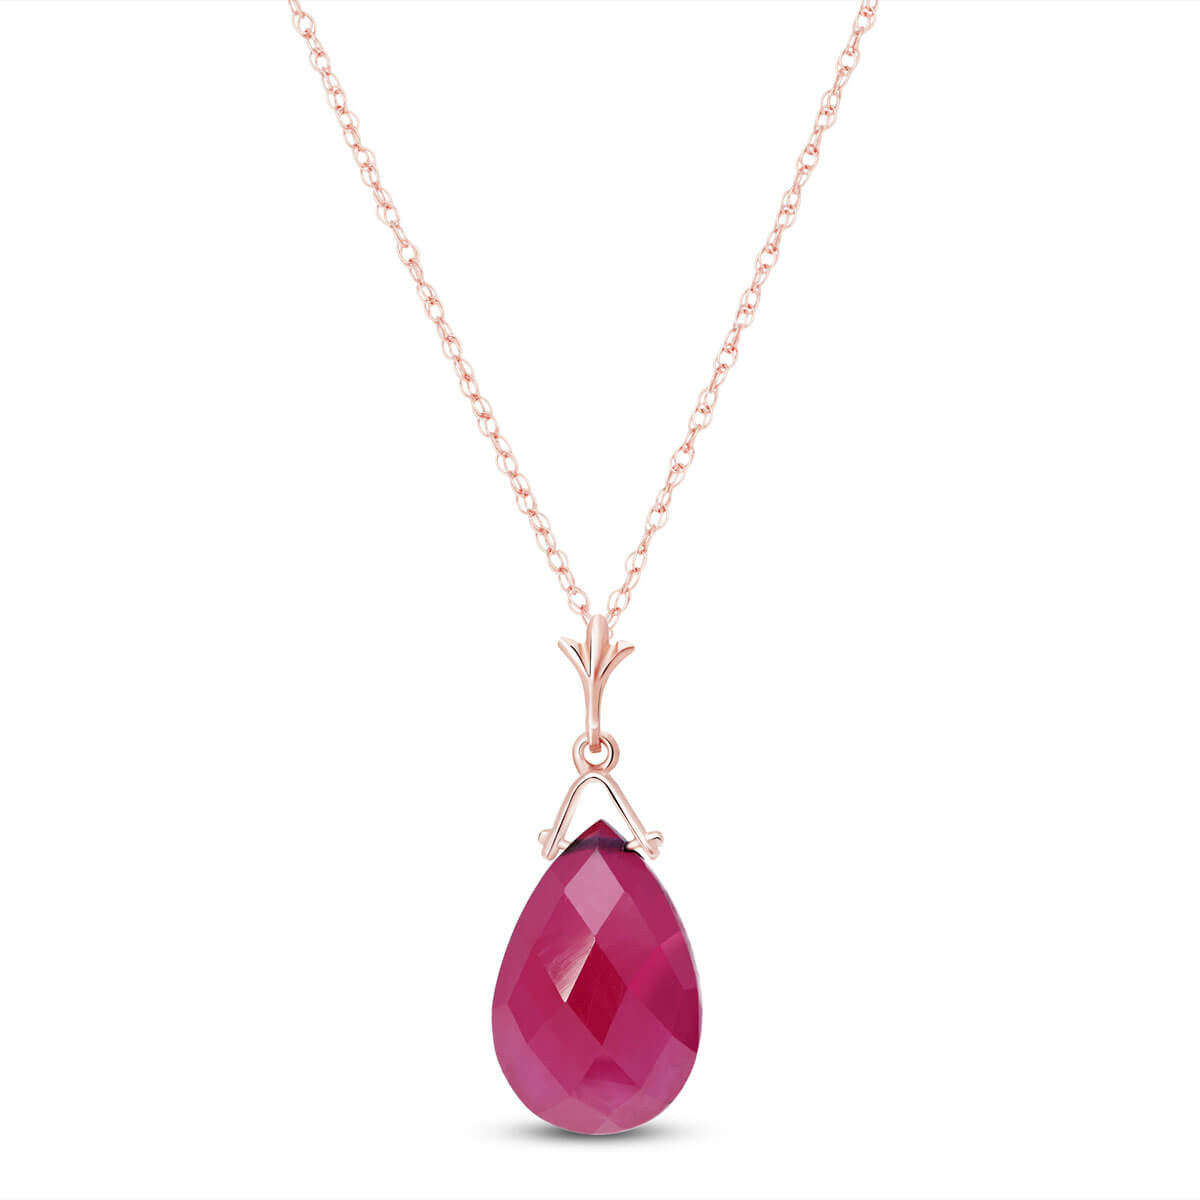 Ruby Droplet Pendant Necklace 8 ct in 9ct Rose Gold